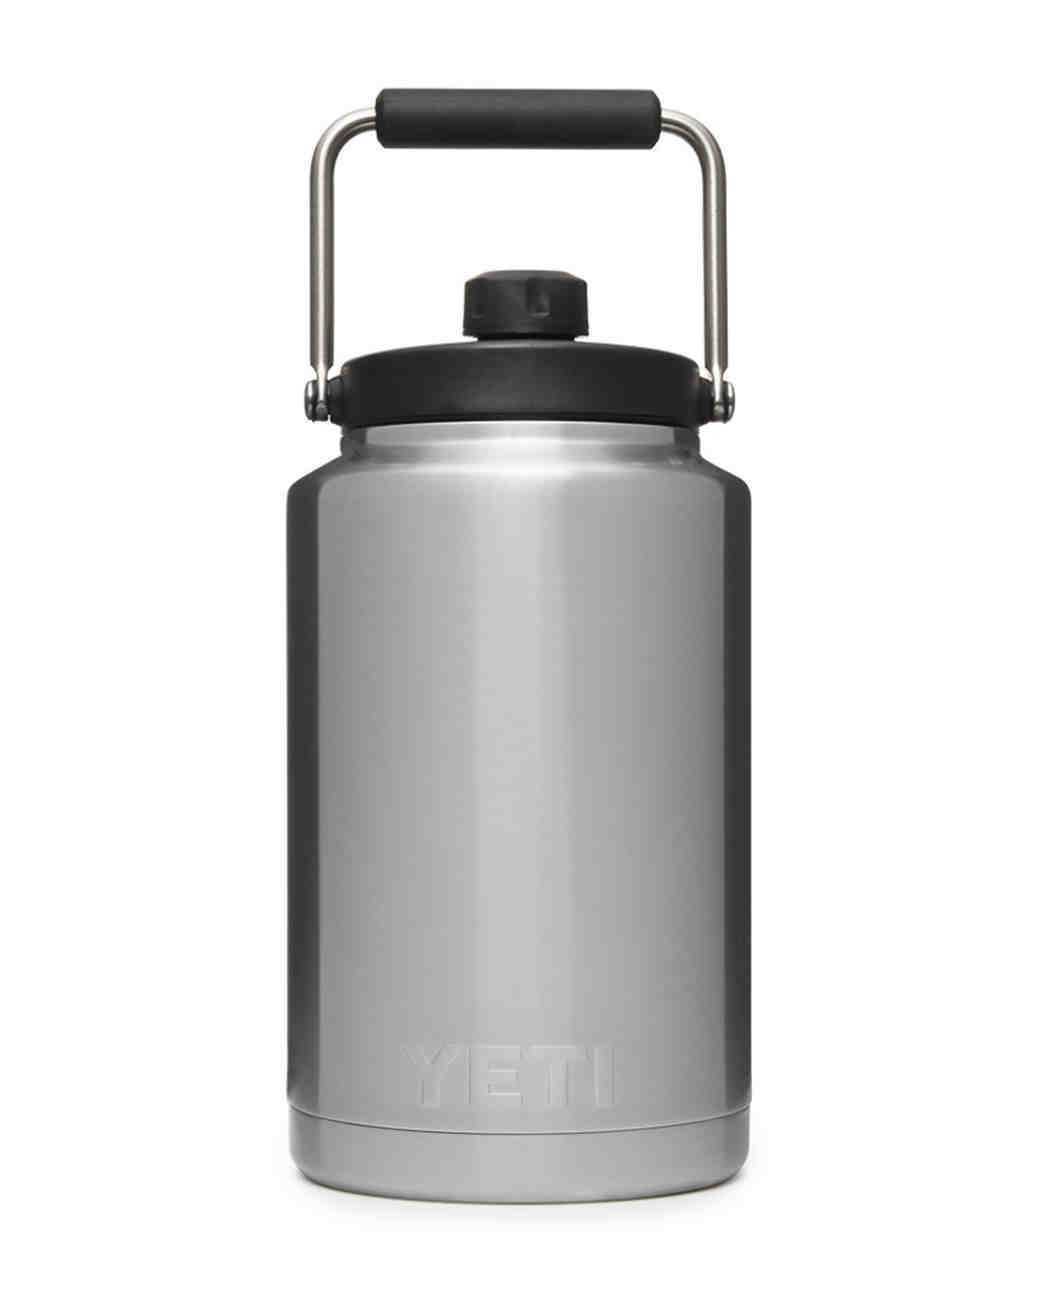 groom gift guide yeti rambler one gallon jug